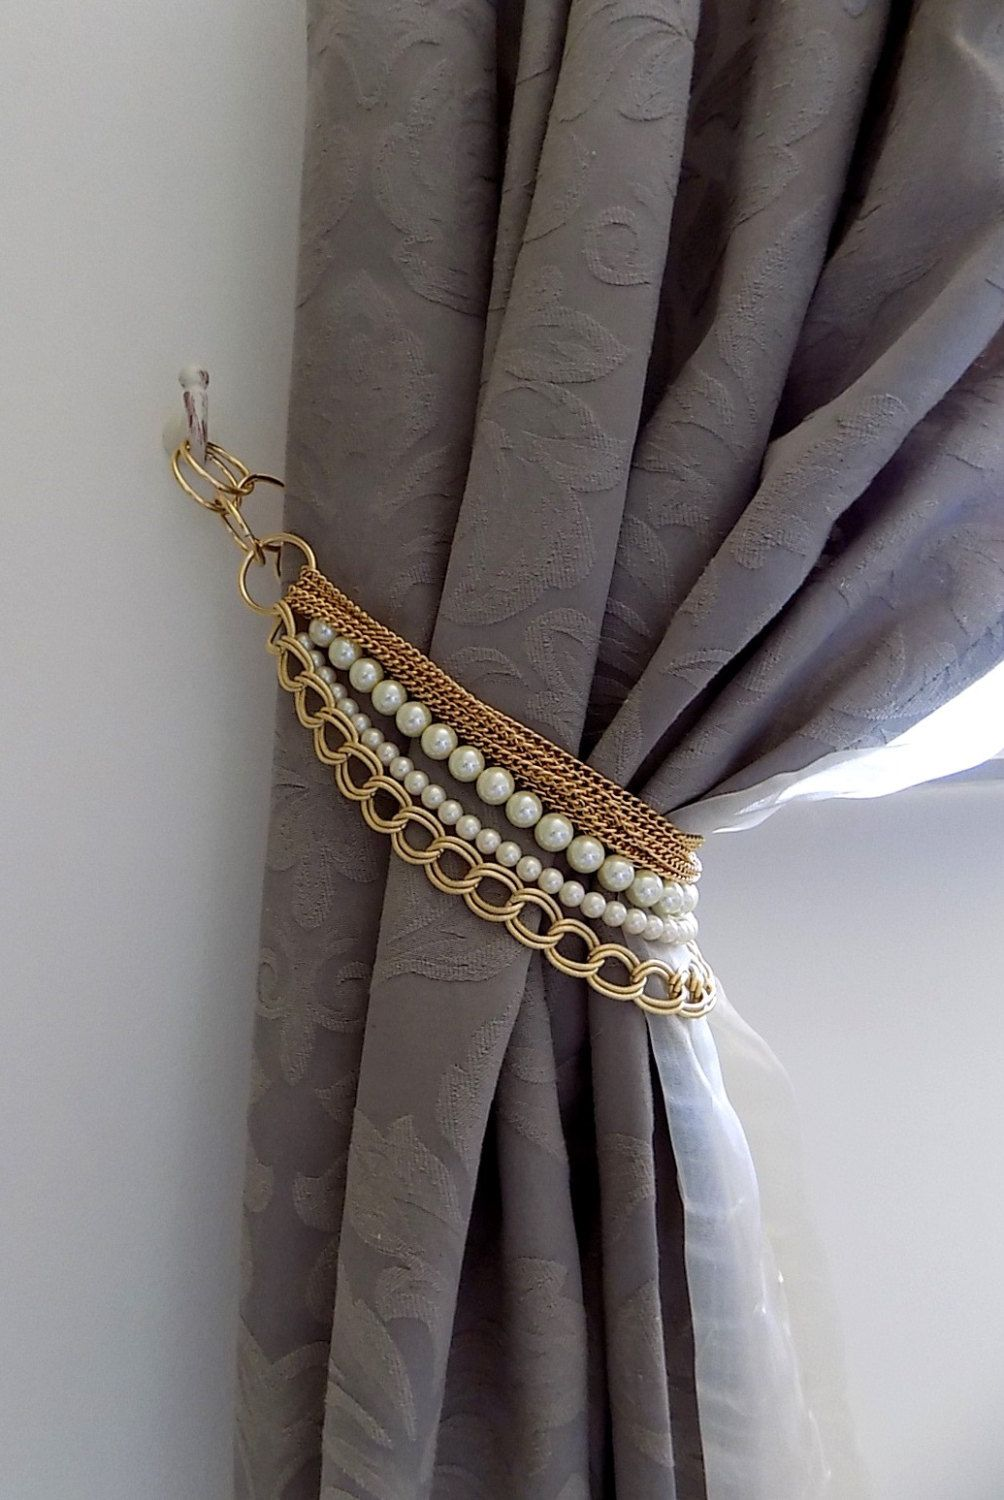 Beaded decorative curtain holder, tie back with golden chain and ... for Curtain Holders Tie Backs  557ylc